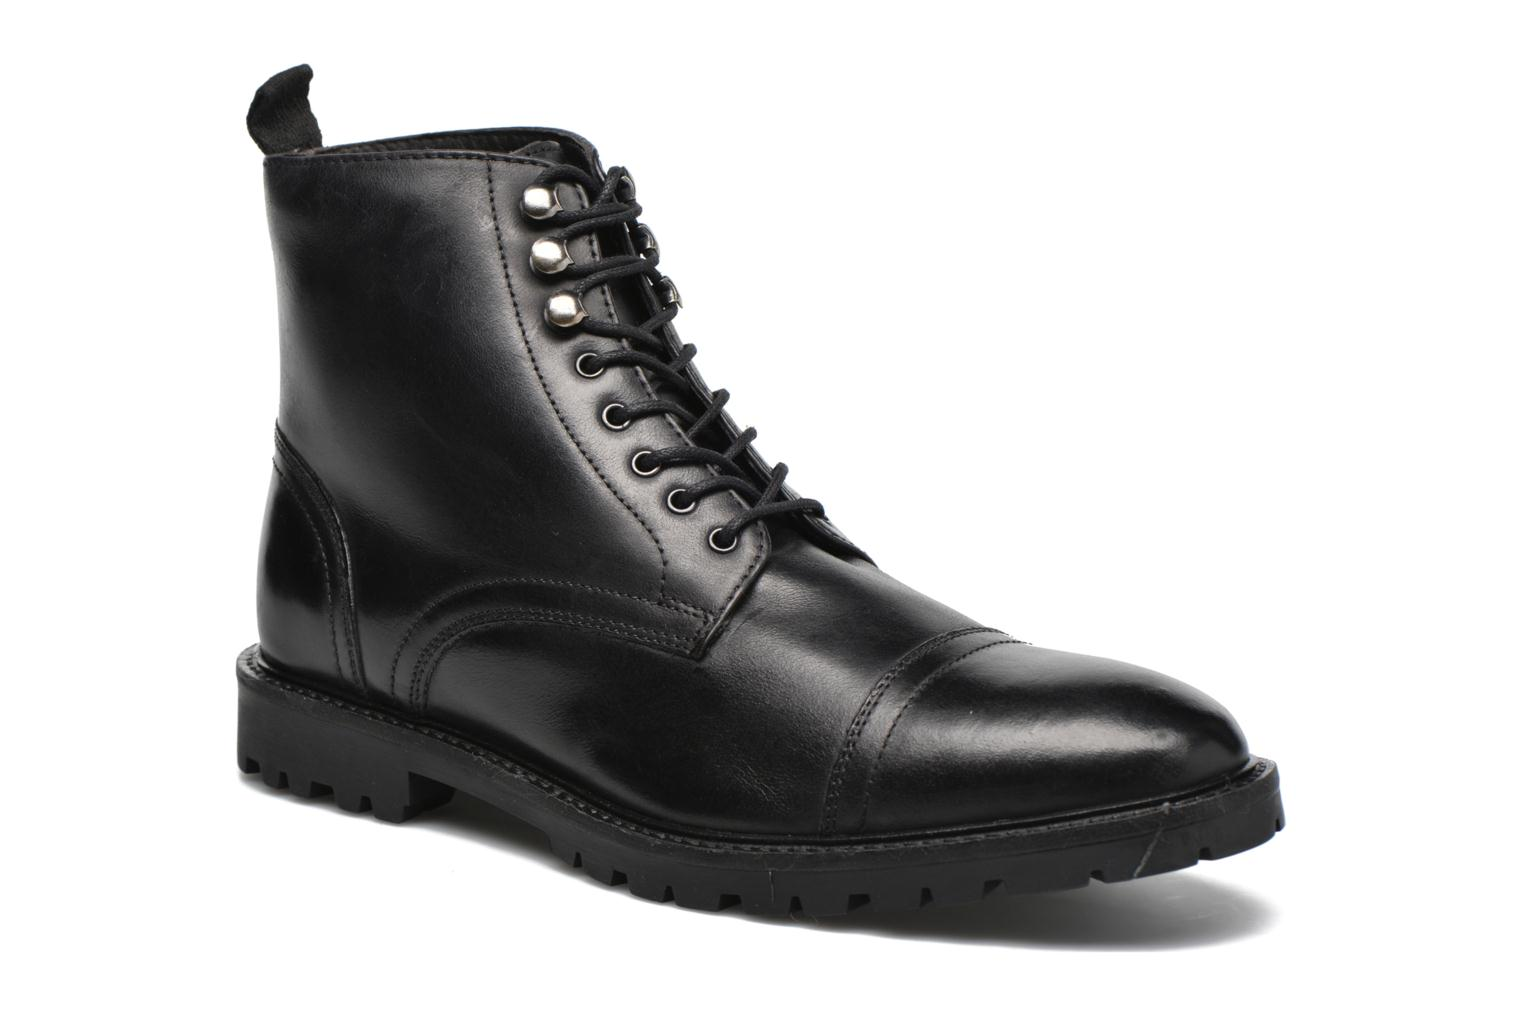 Marques Chaussure homme Base London homme Siege wash black